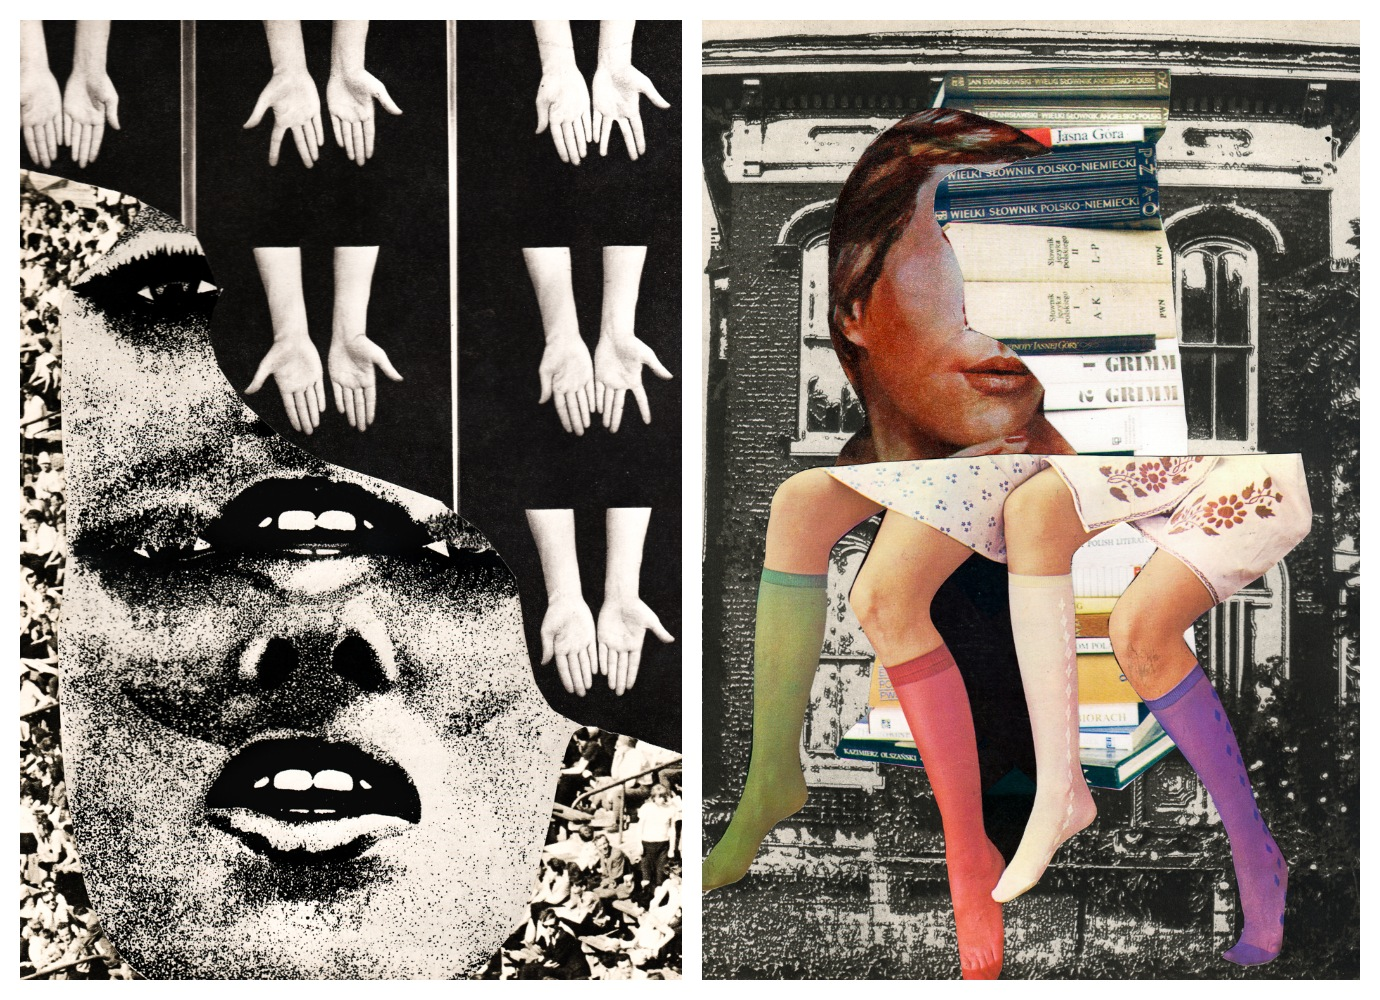 These thoughtful collages explore the female body and human dreams